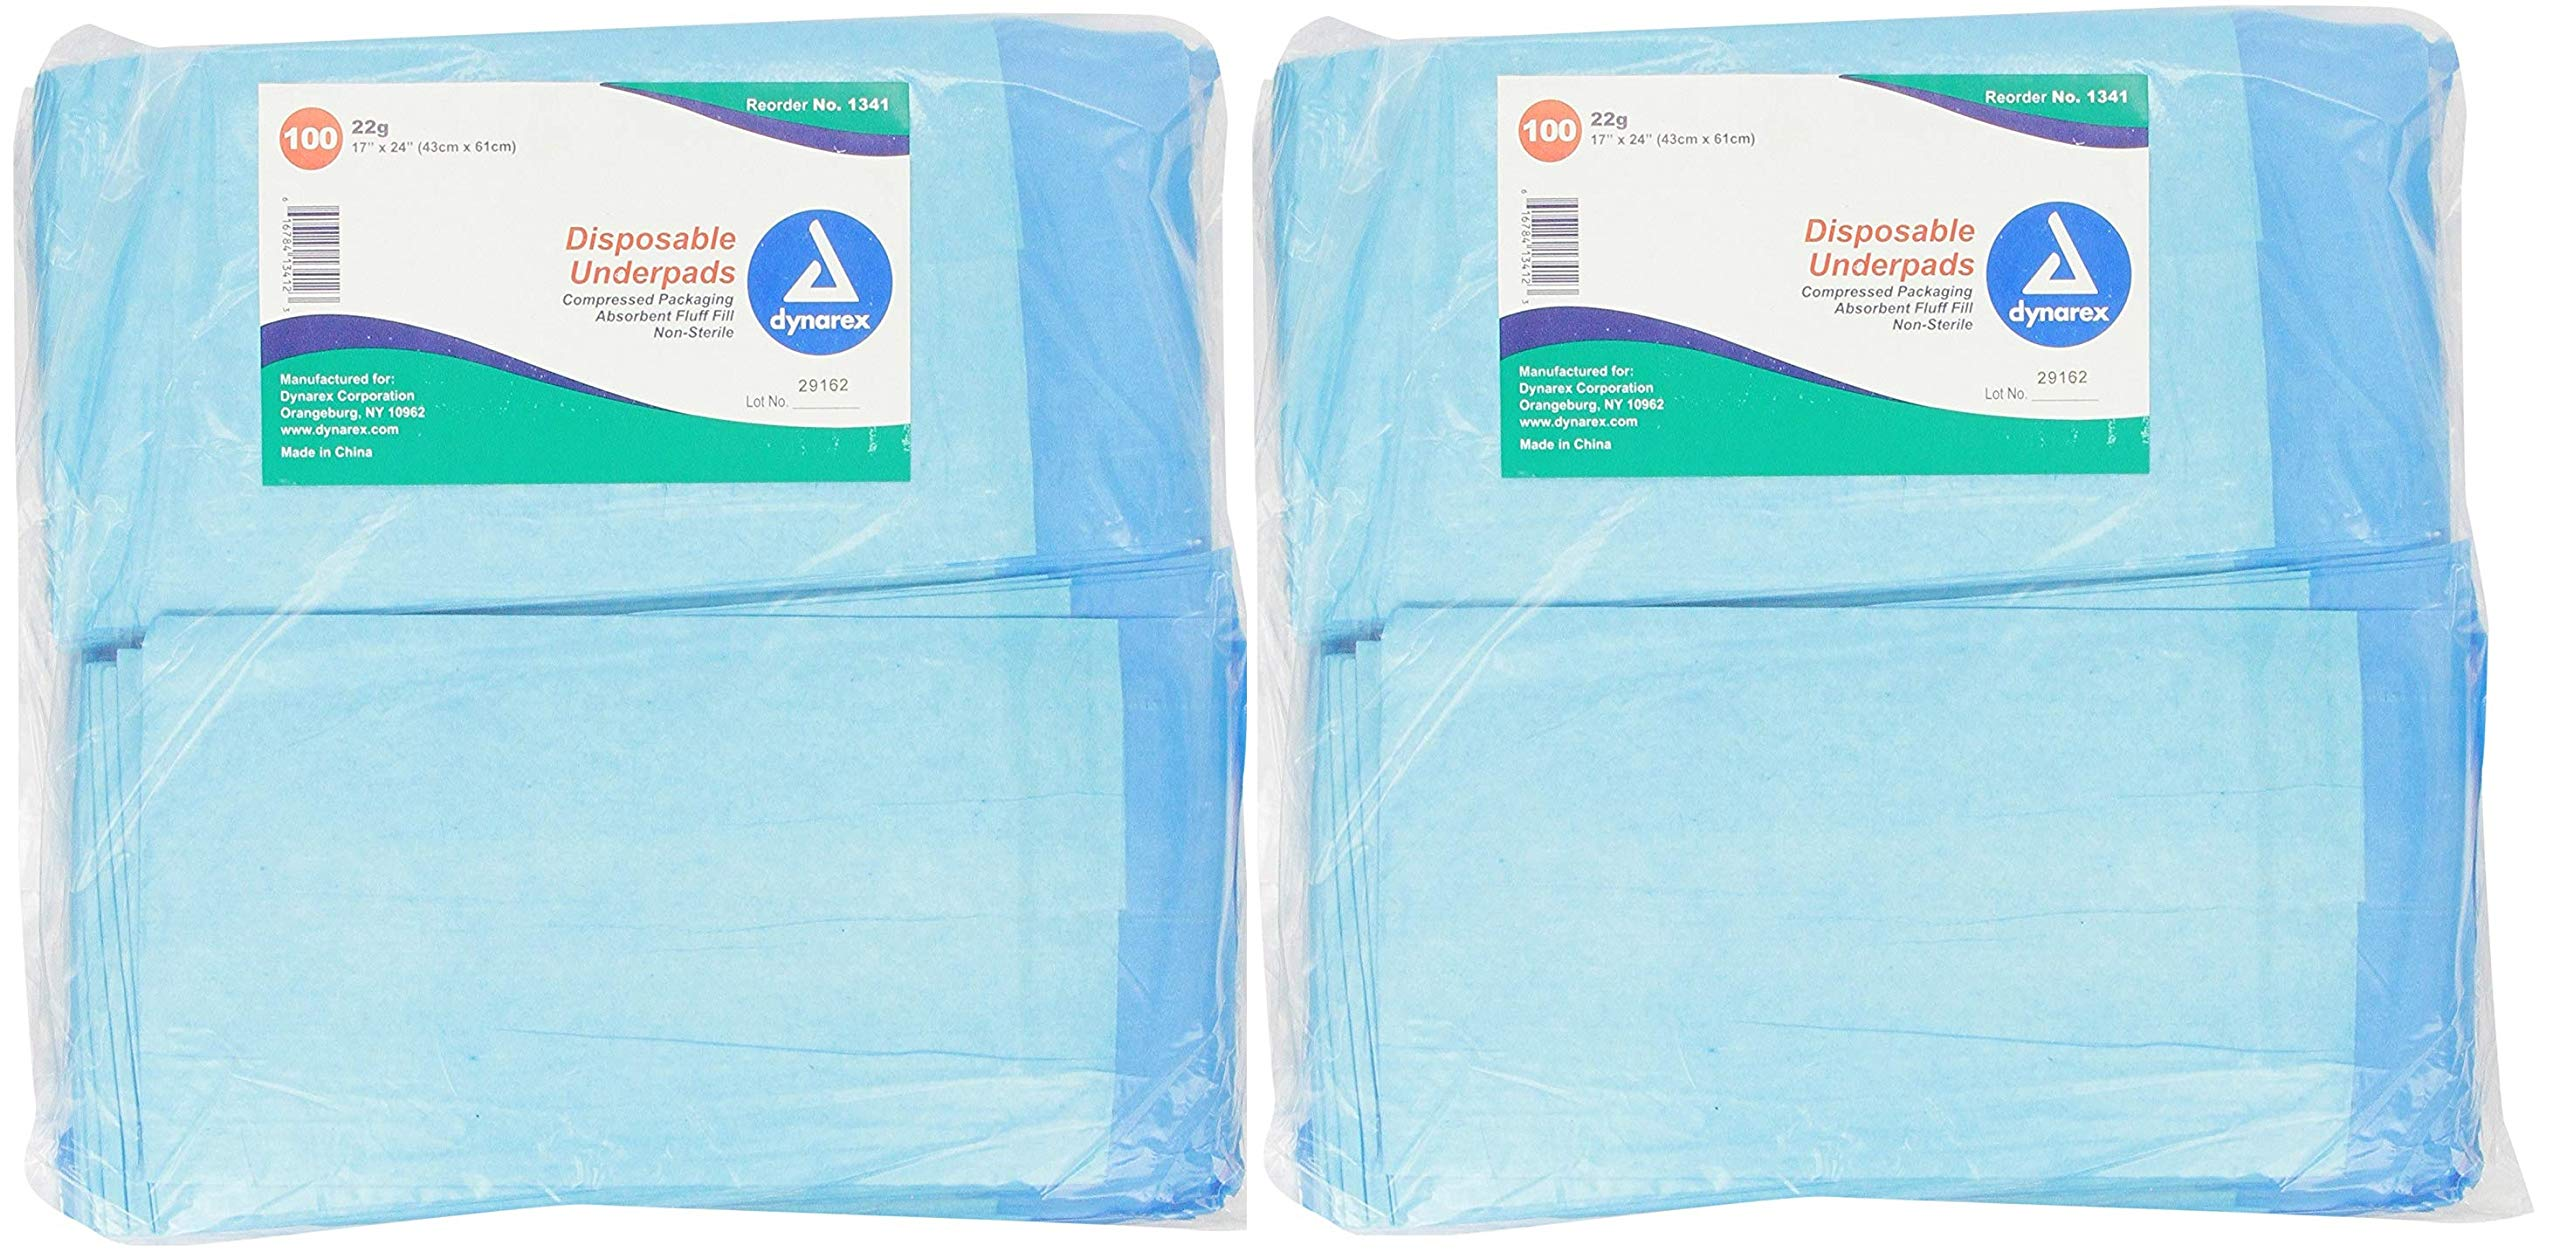 Dynarex Disposable Underpad, 17 X 24 Inches, 100 Count (Pack of 2)